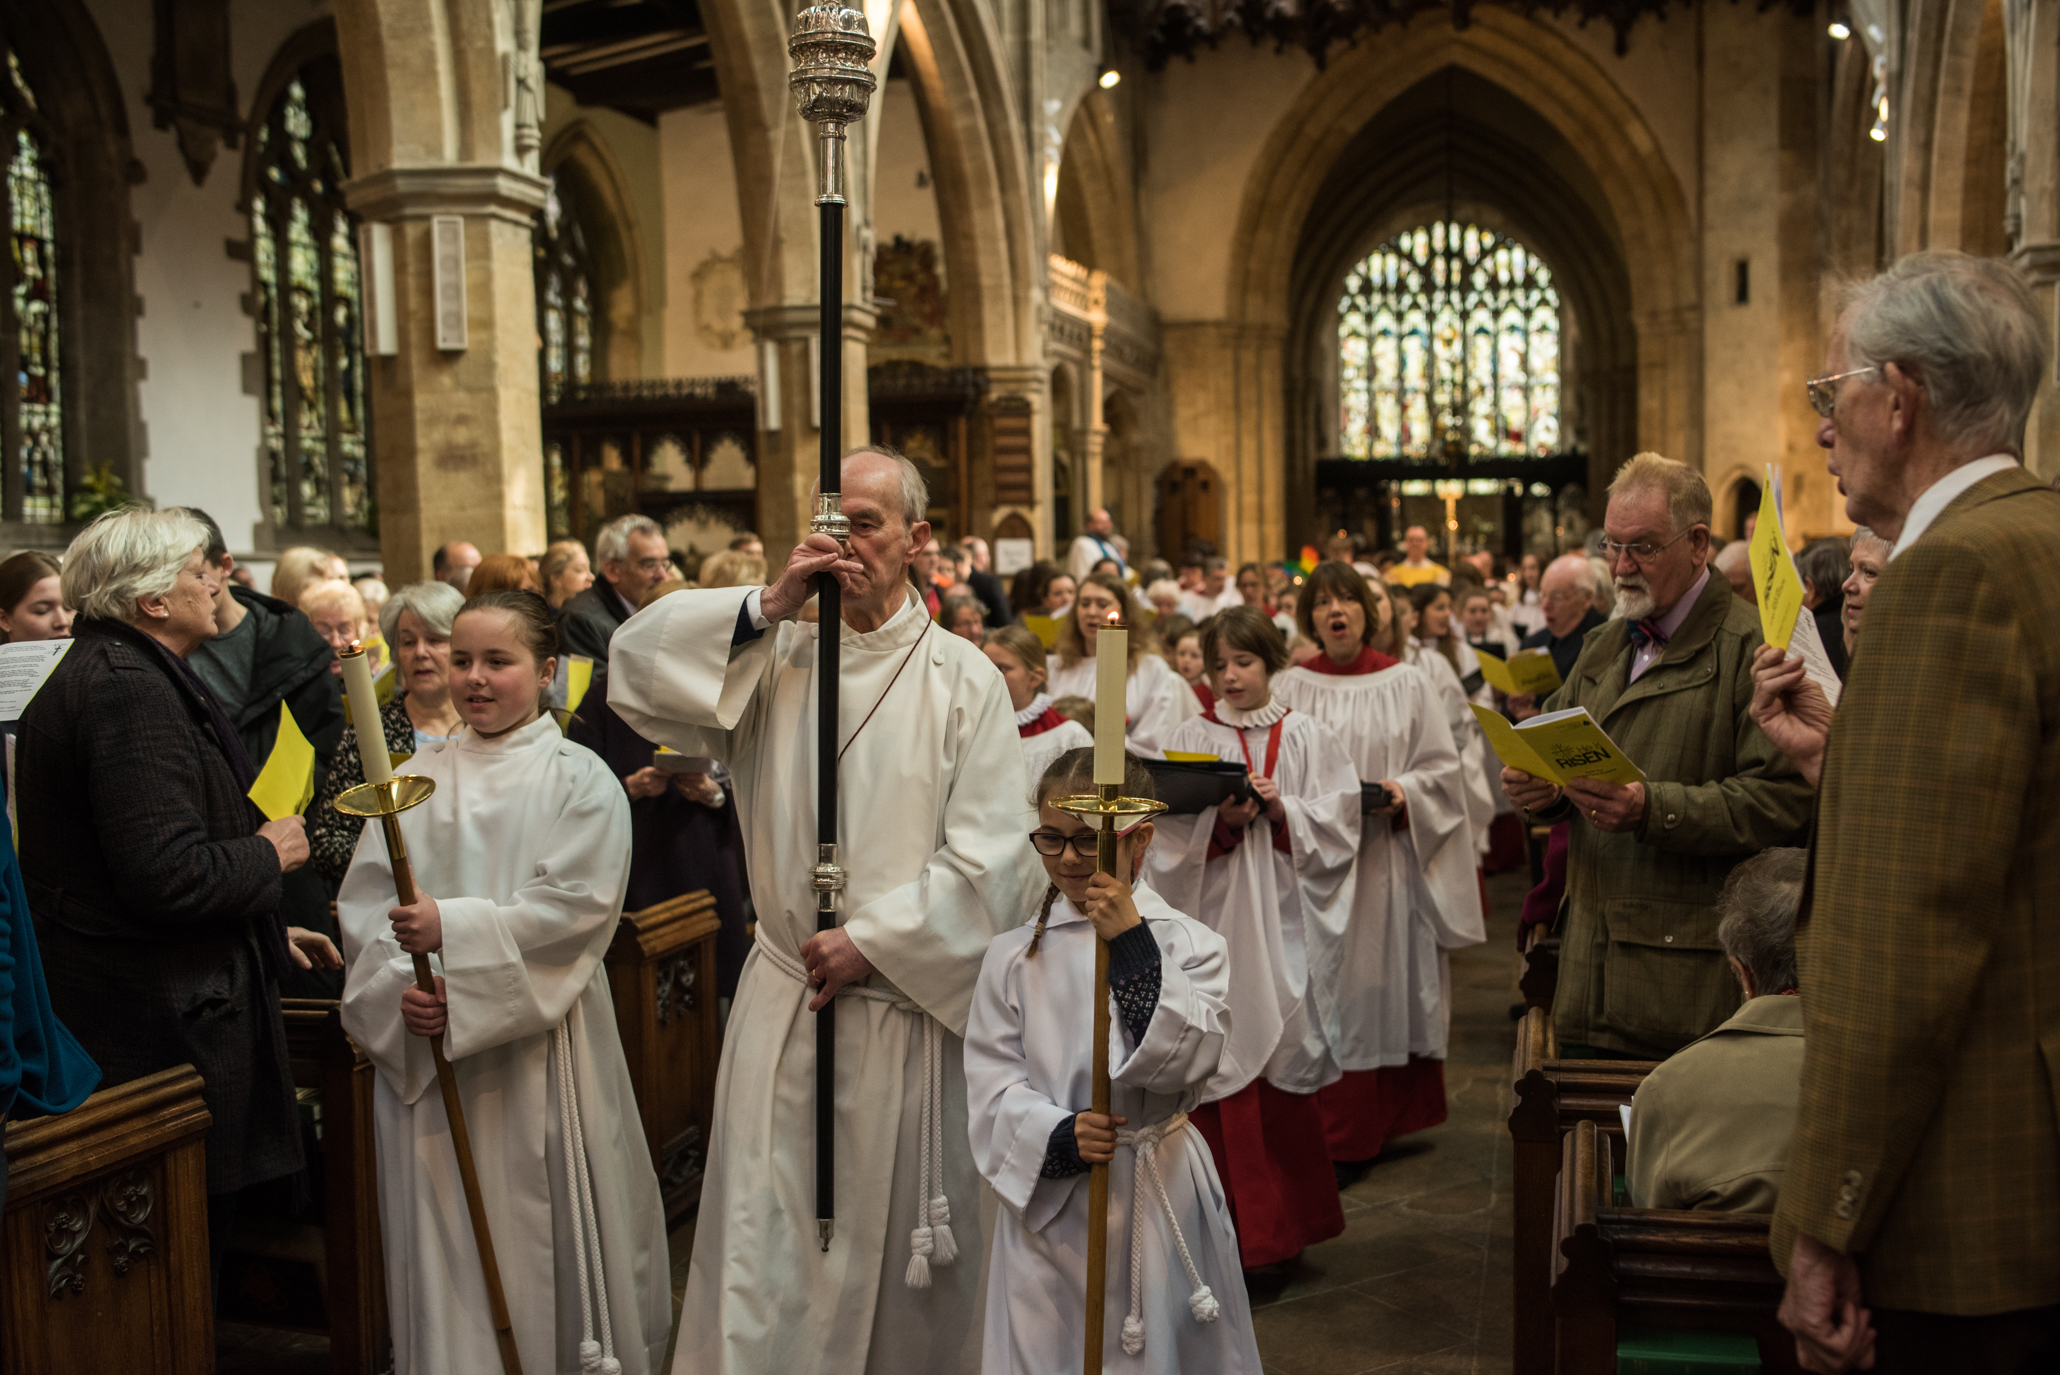 Easter day service at Holy Trinity Church Stratford-upon-Avon 2018